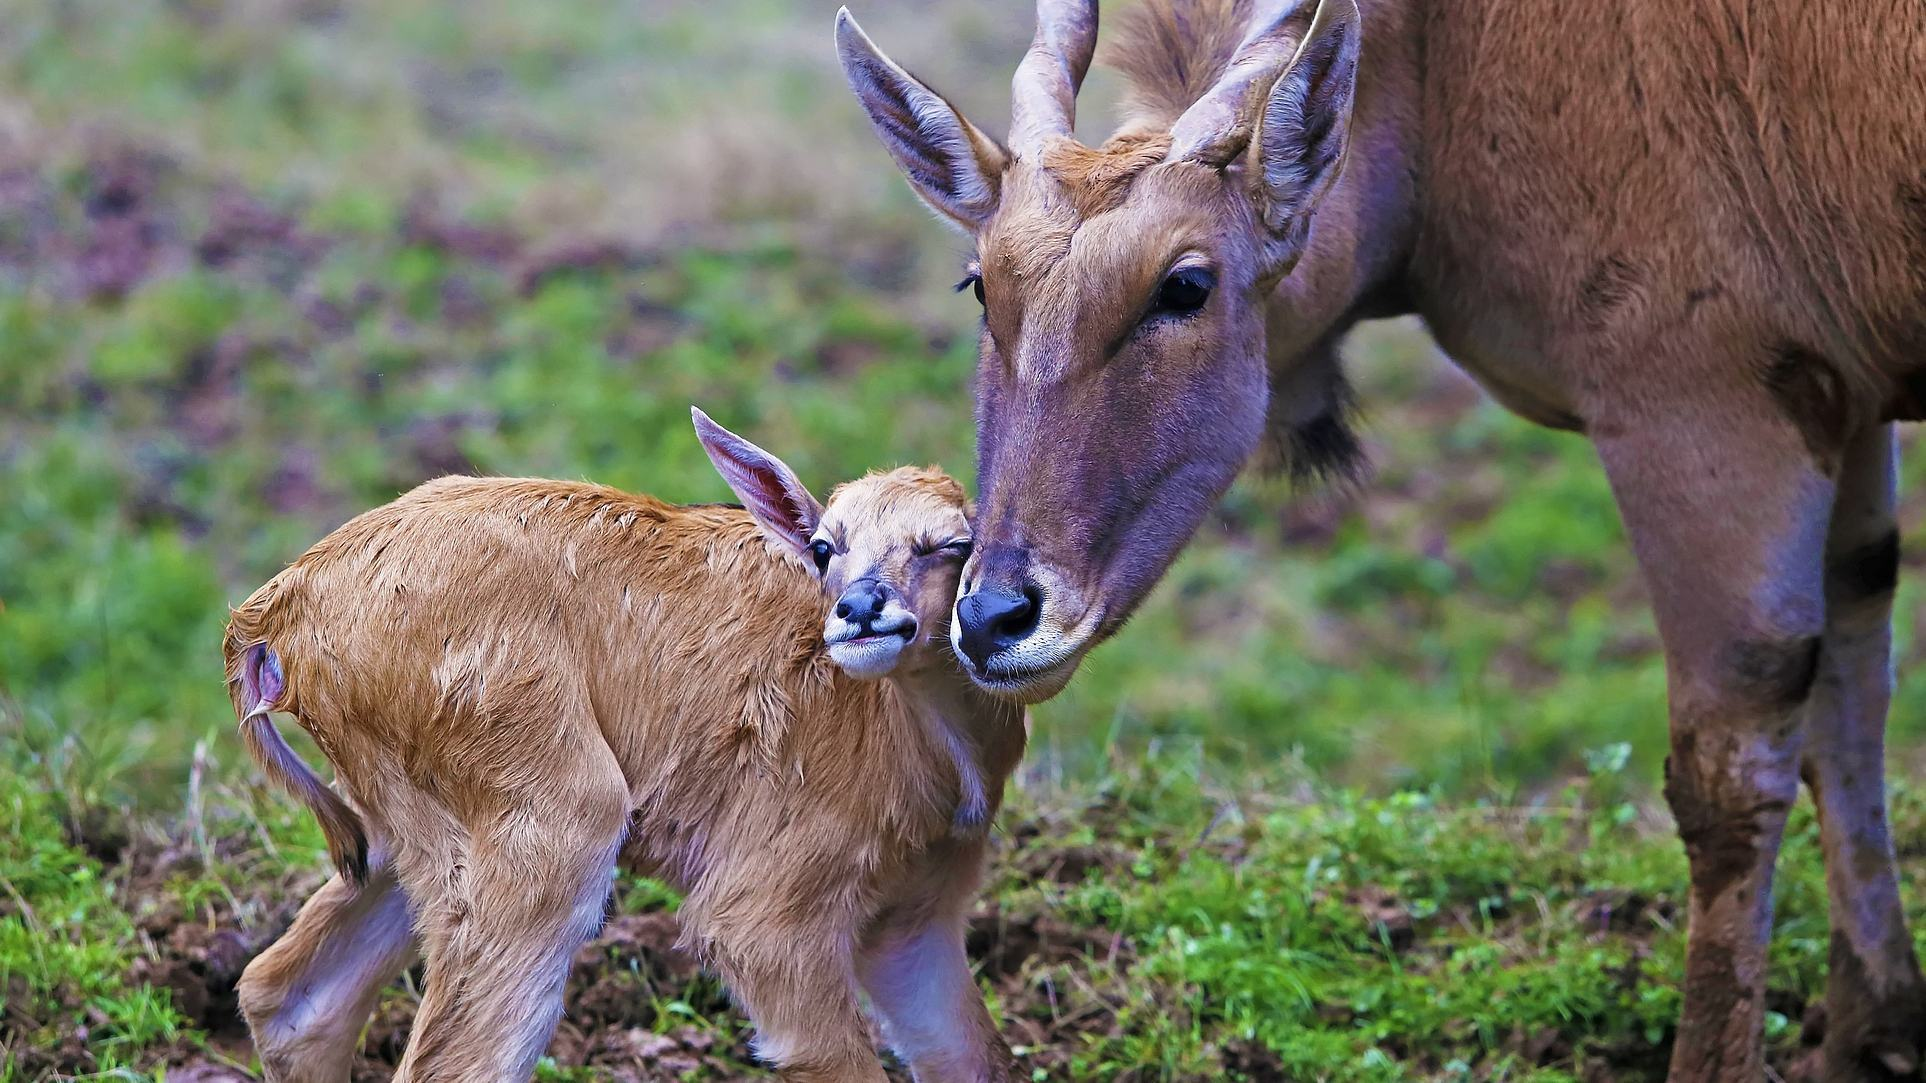 Mother's Day: Let's celebrate the day for animal mothers too!